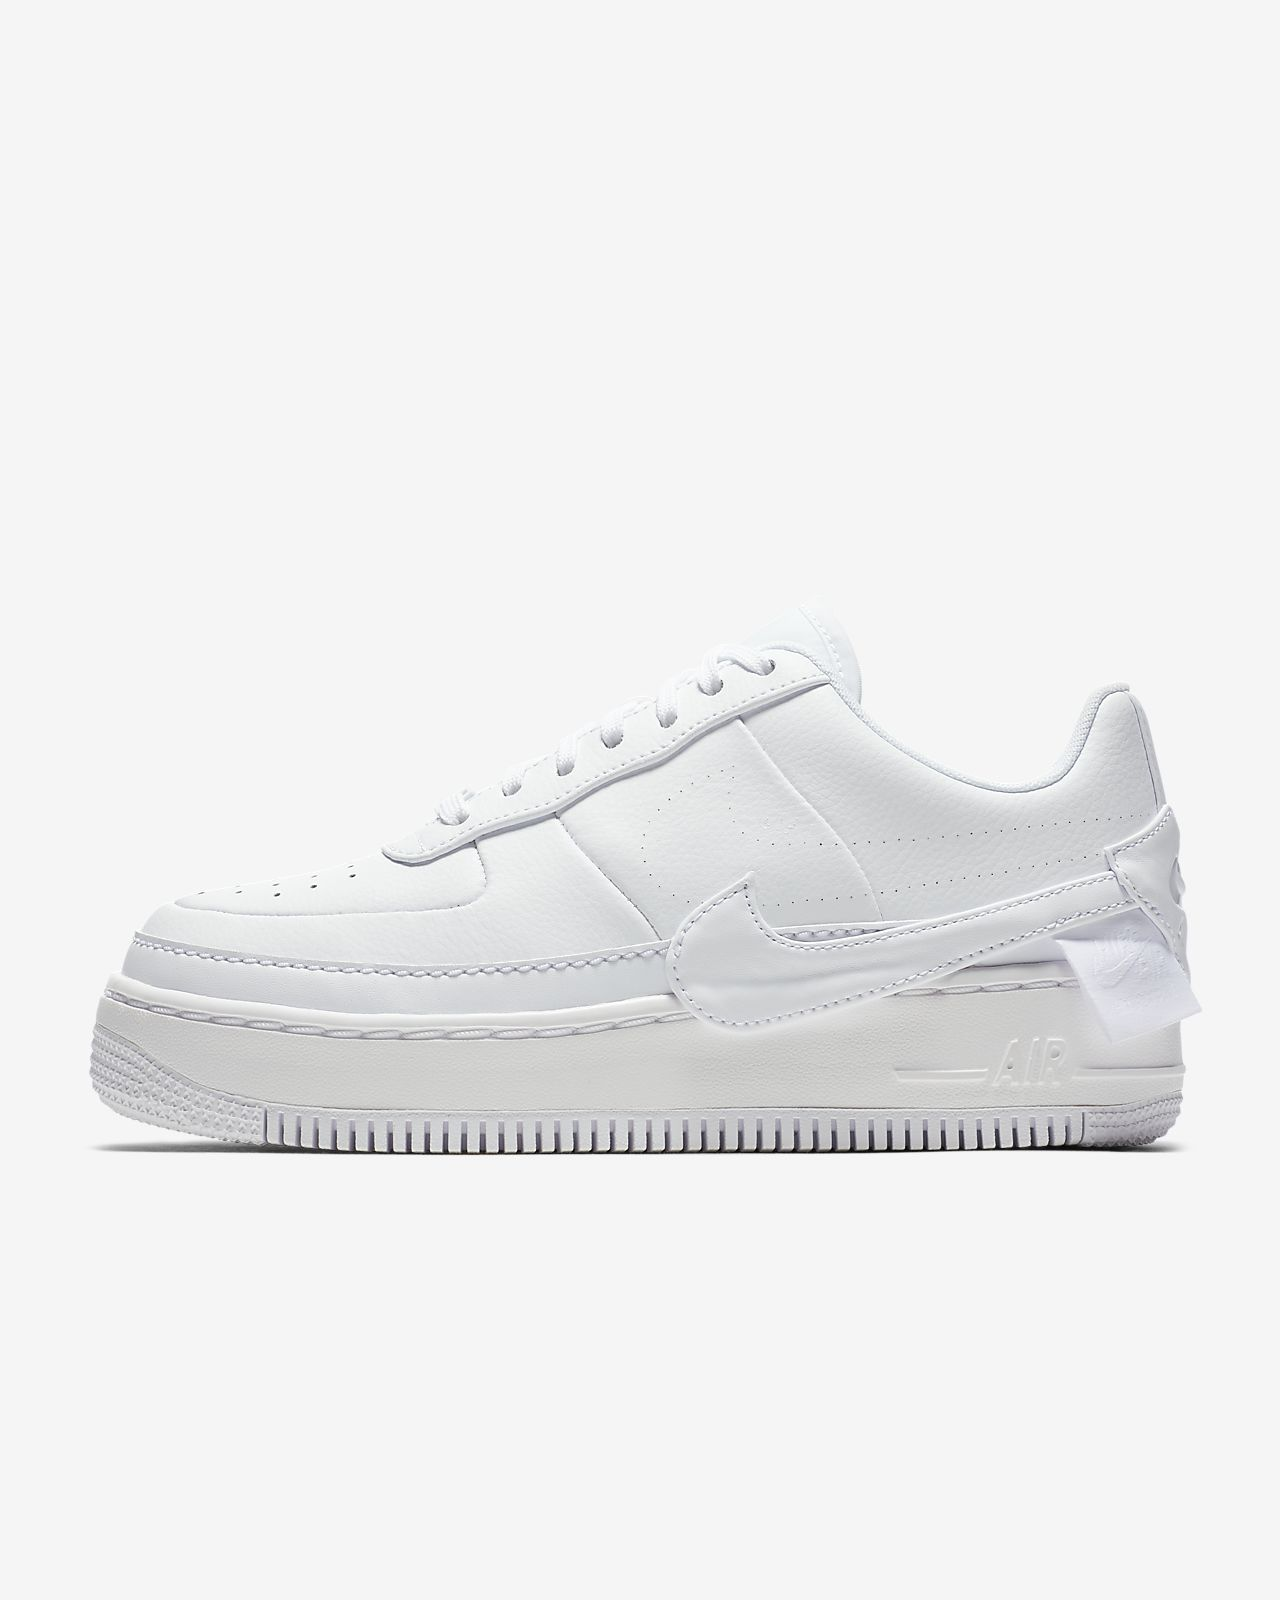 quality design 6bec6 8ca36 Nike Air Force 1 Jester XX